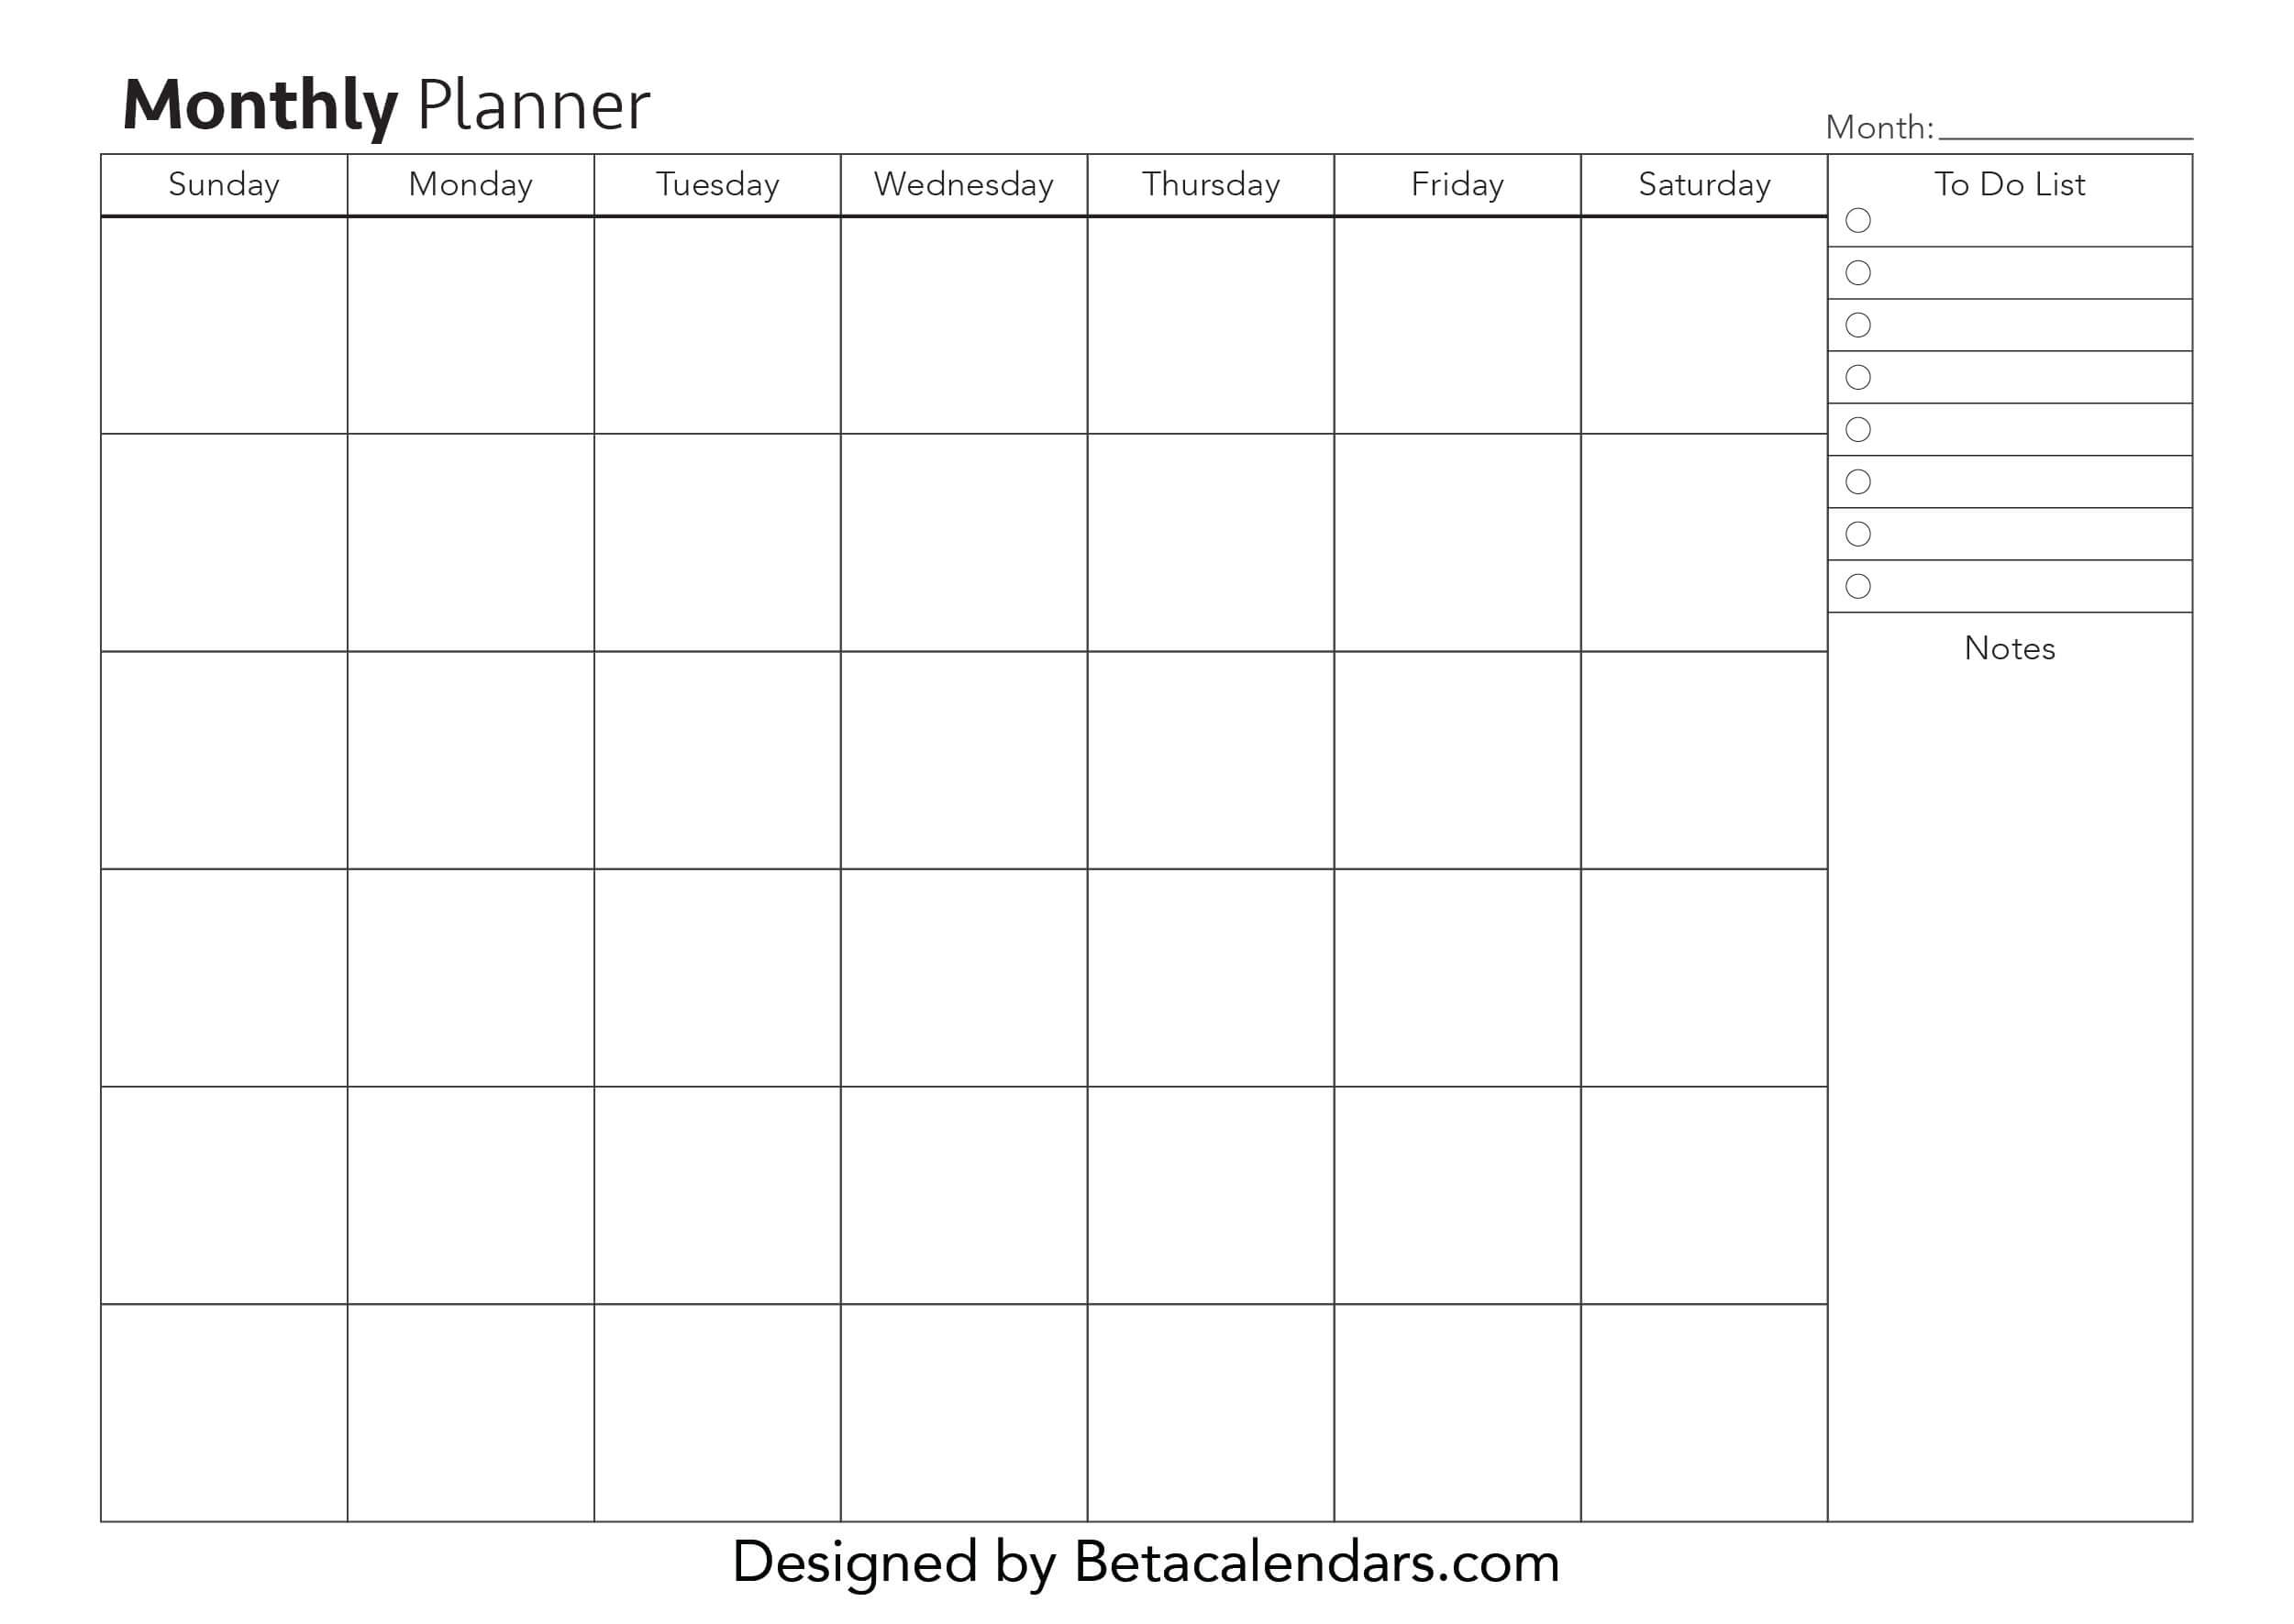 Calendar Planner Hourly Free Printable